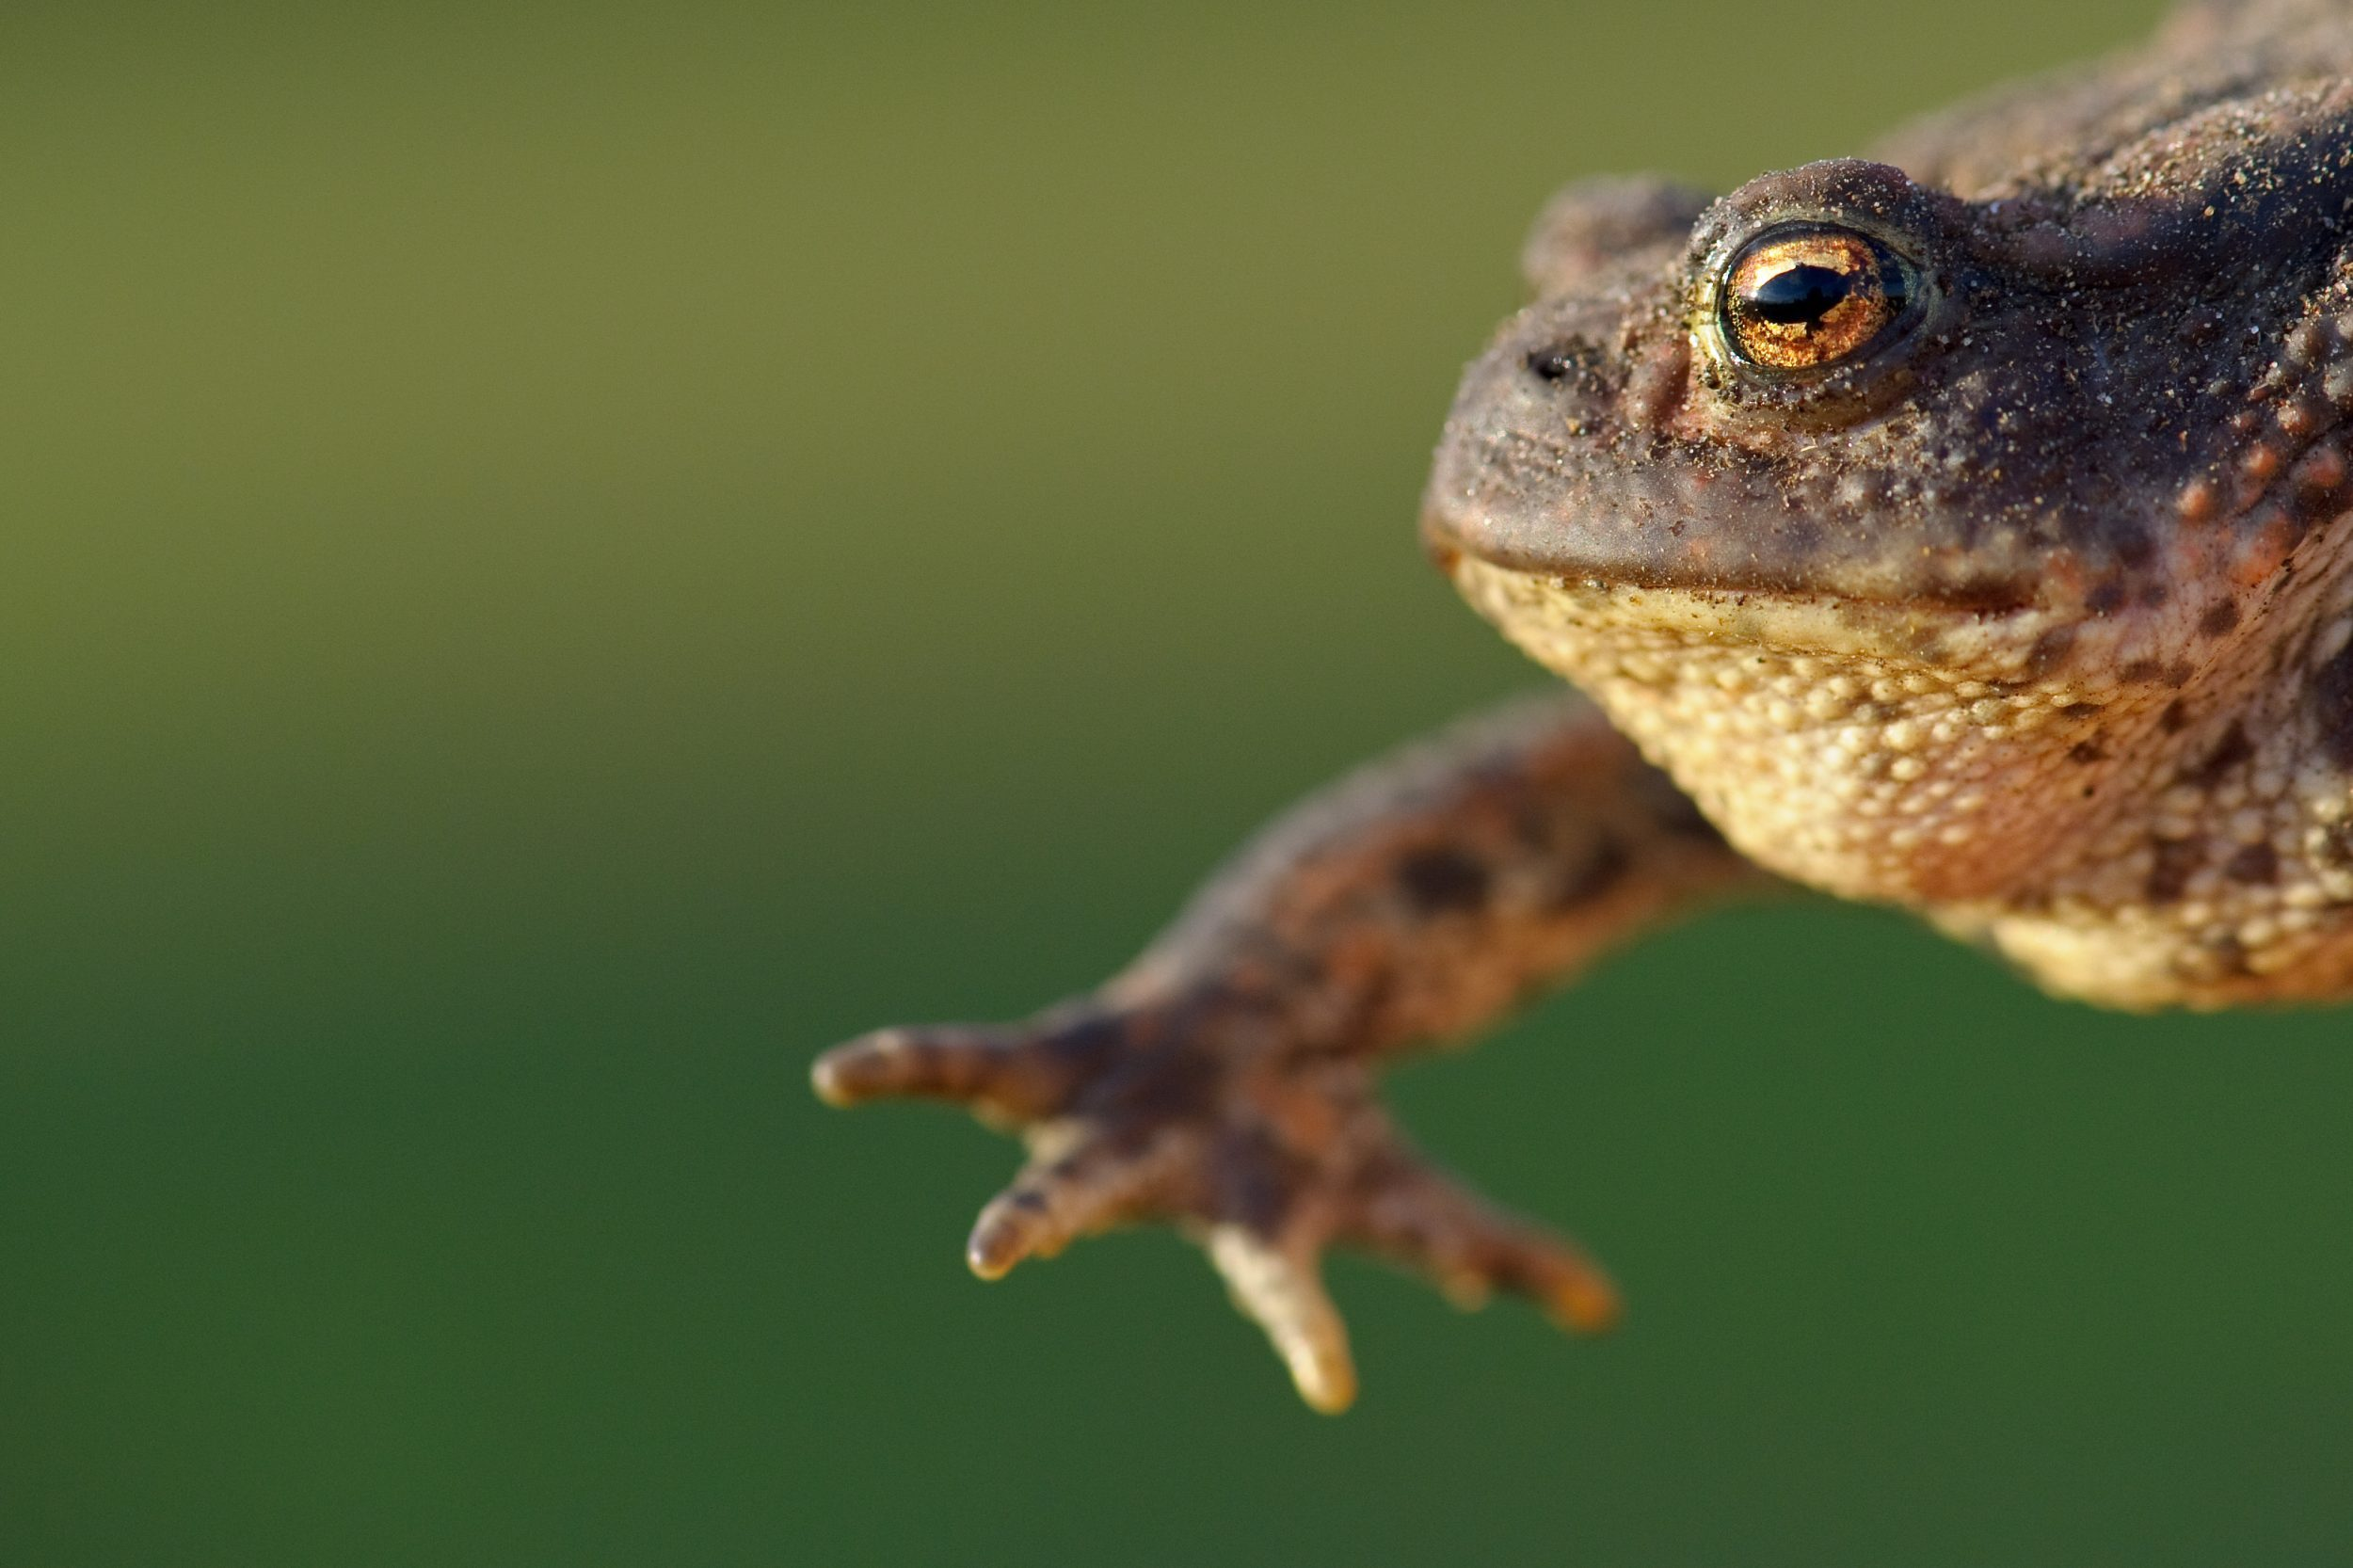 Here's a common toad, note the trademark horizontal iris and watch out for the poisonous skin! Photo by Phil Johnston.